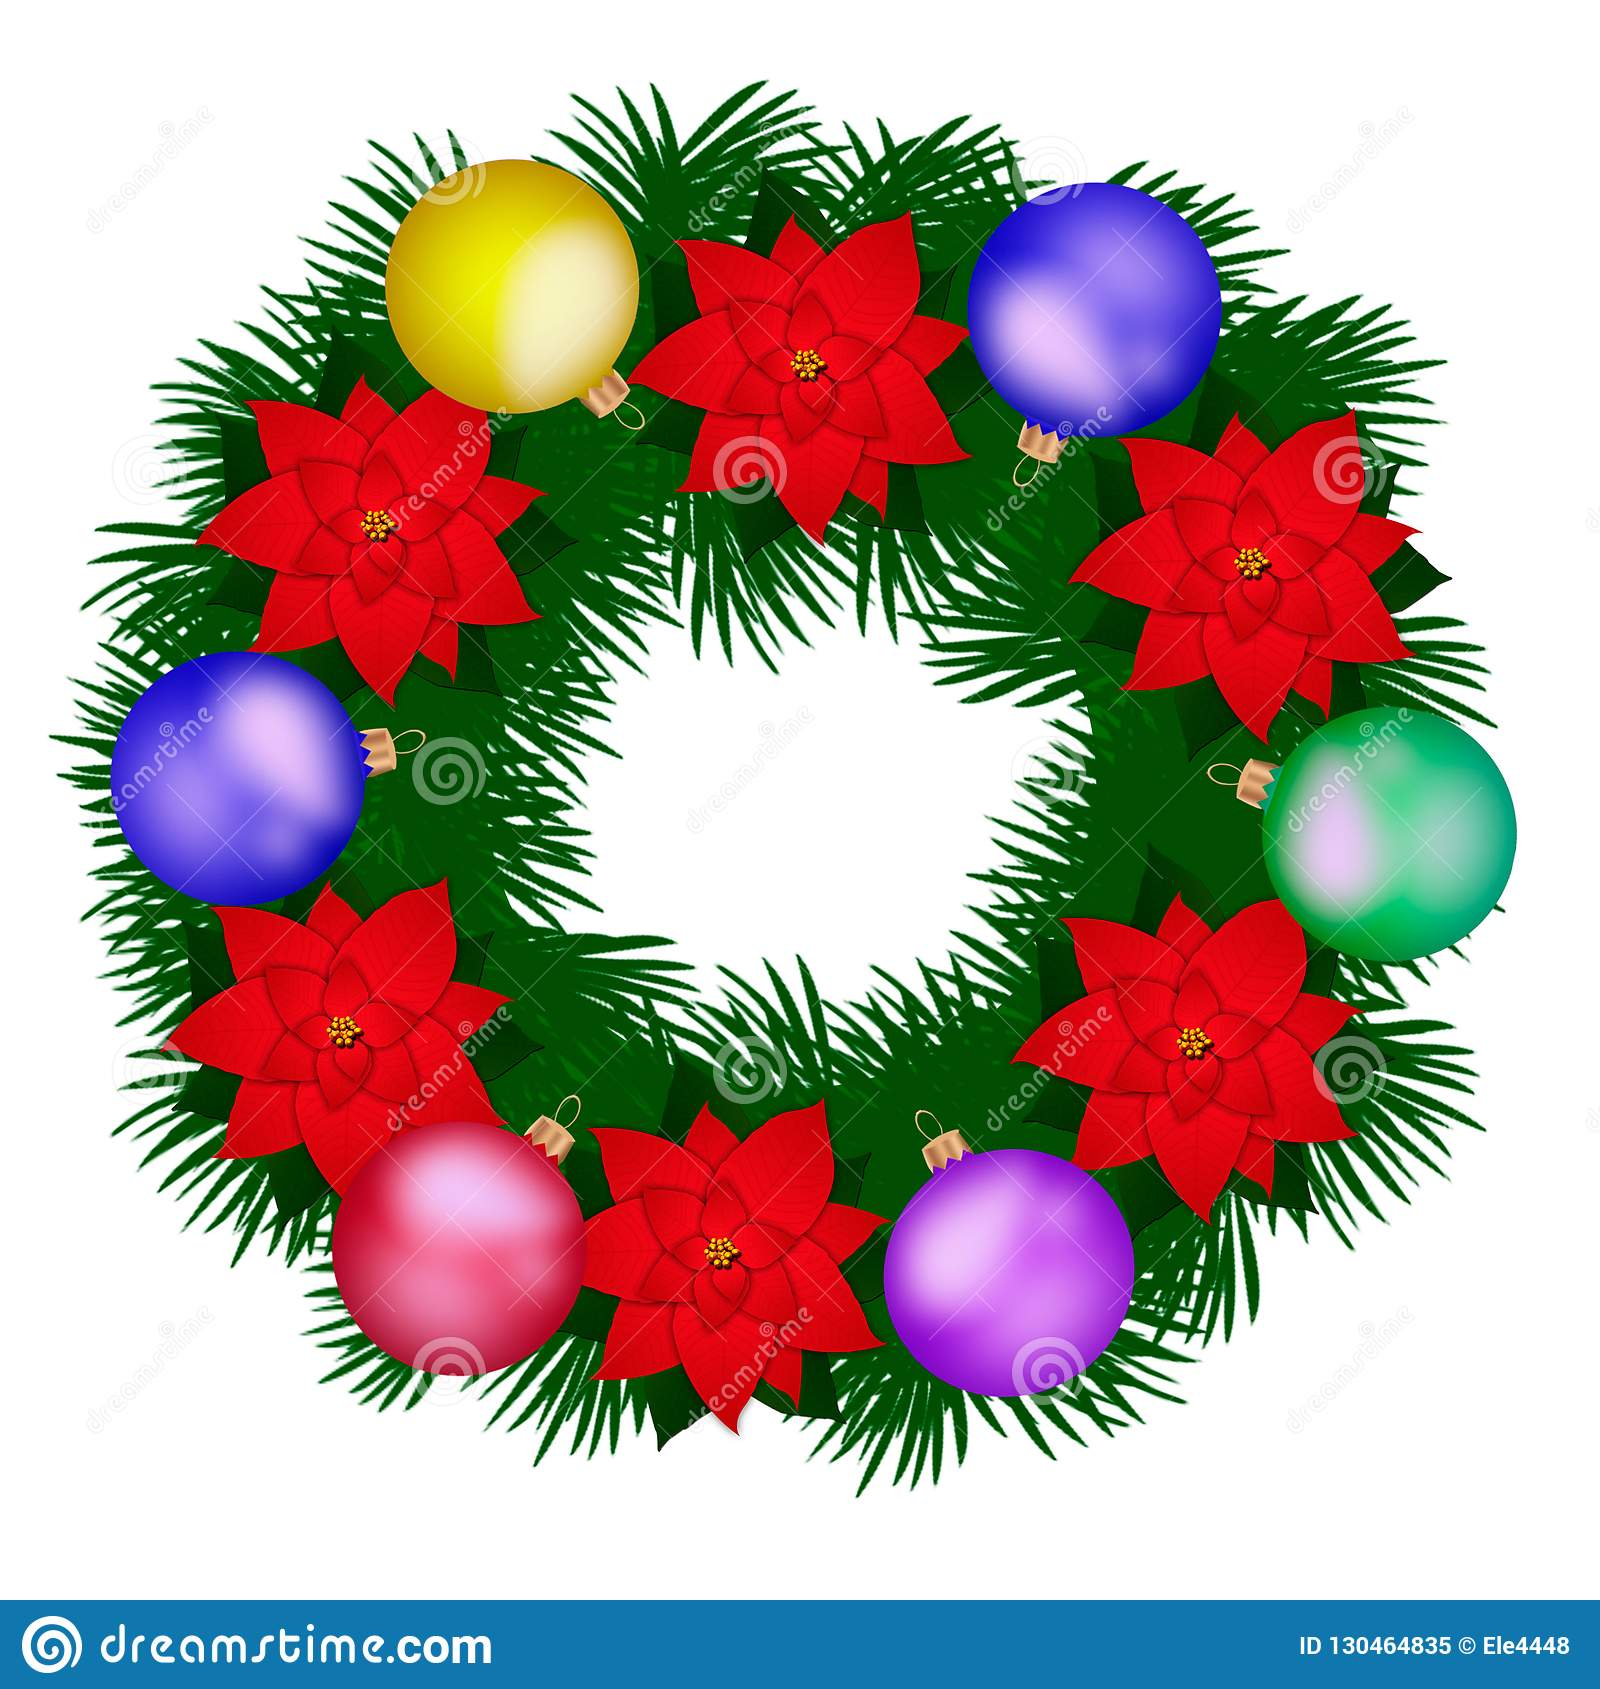 Christmas Flower Decorations.Illustration With Christmas Decorations And Christmas Flower